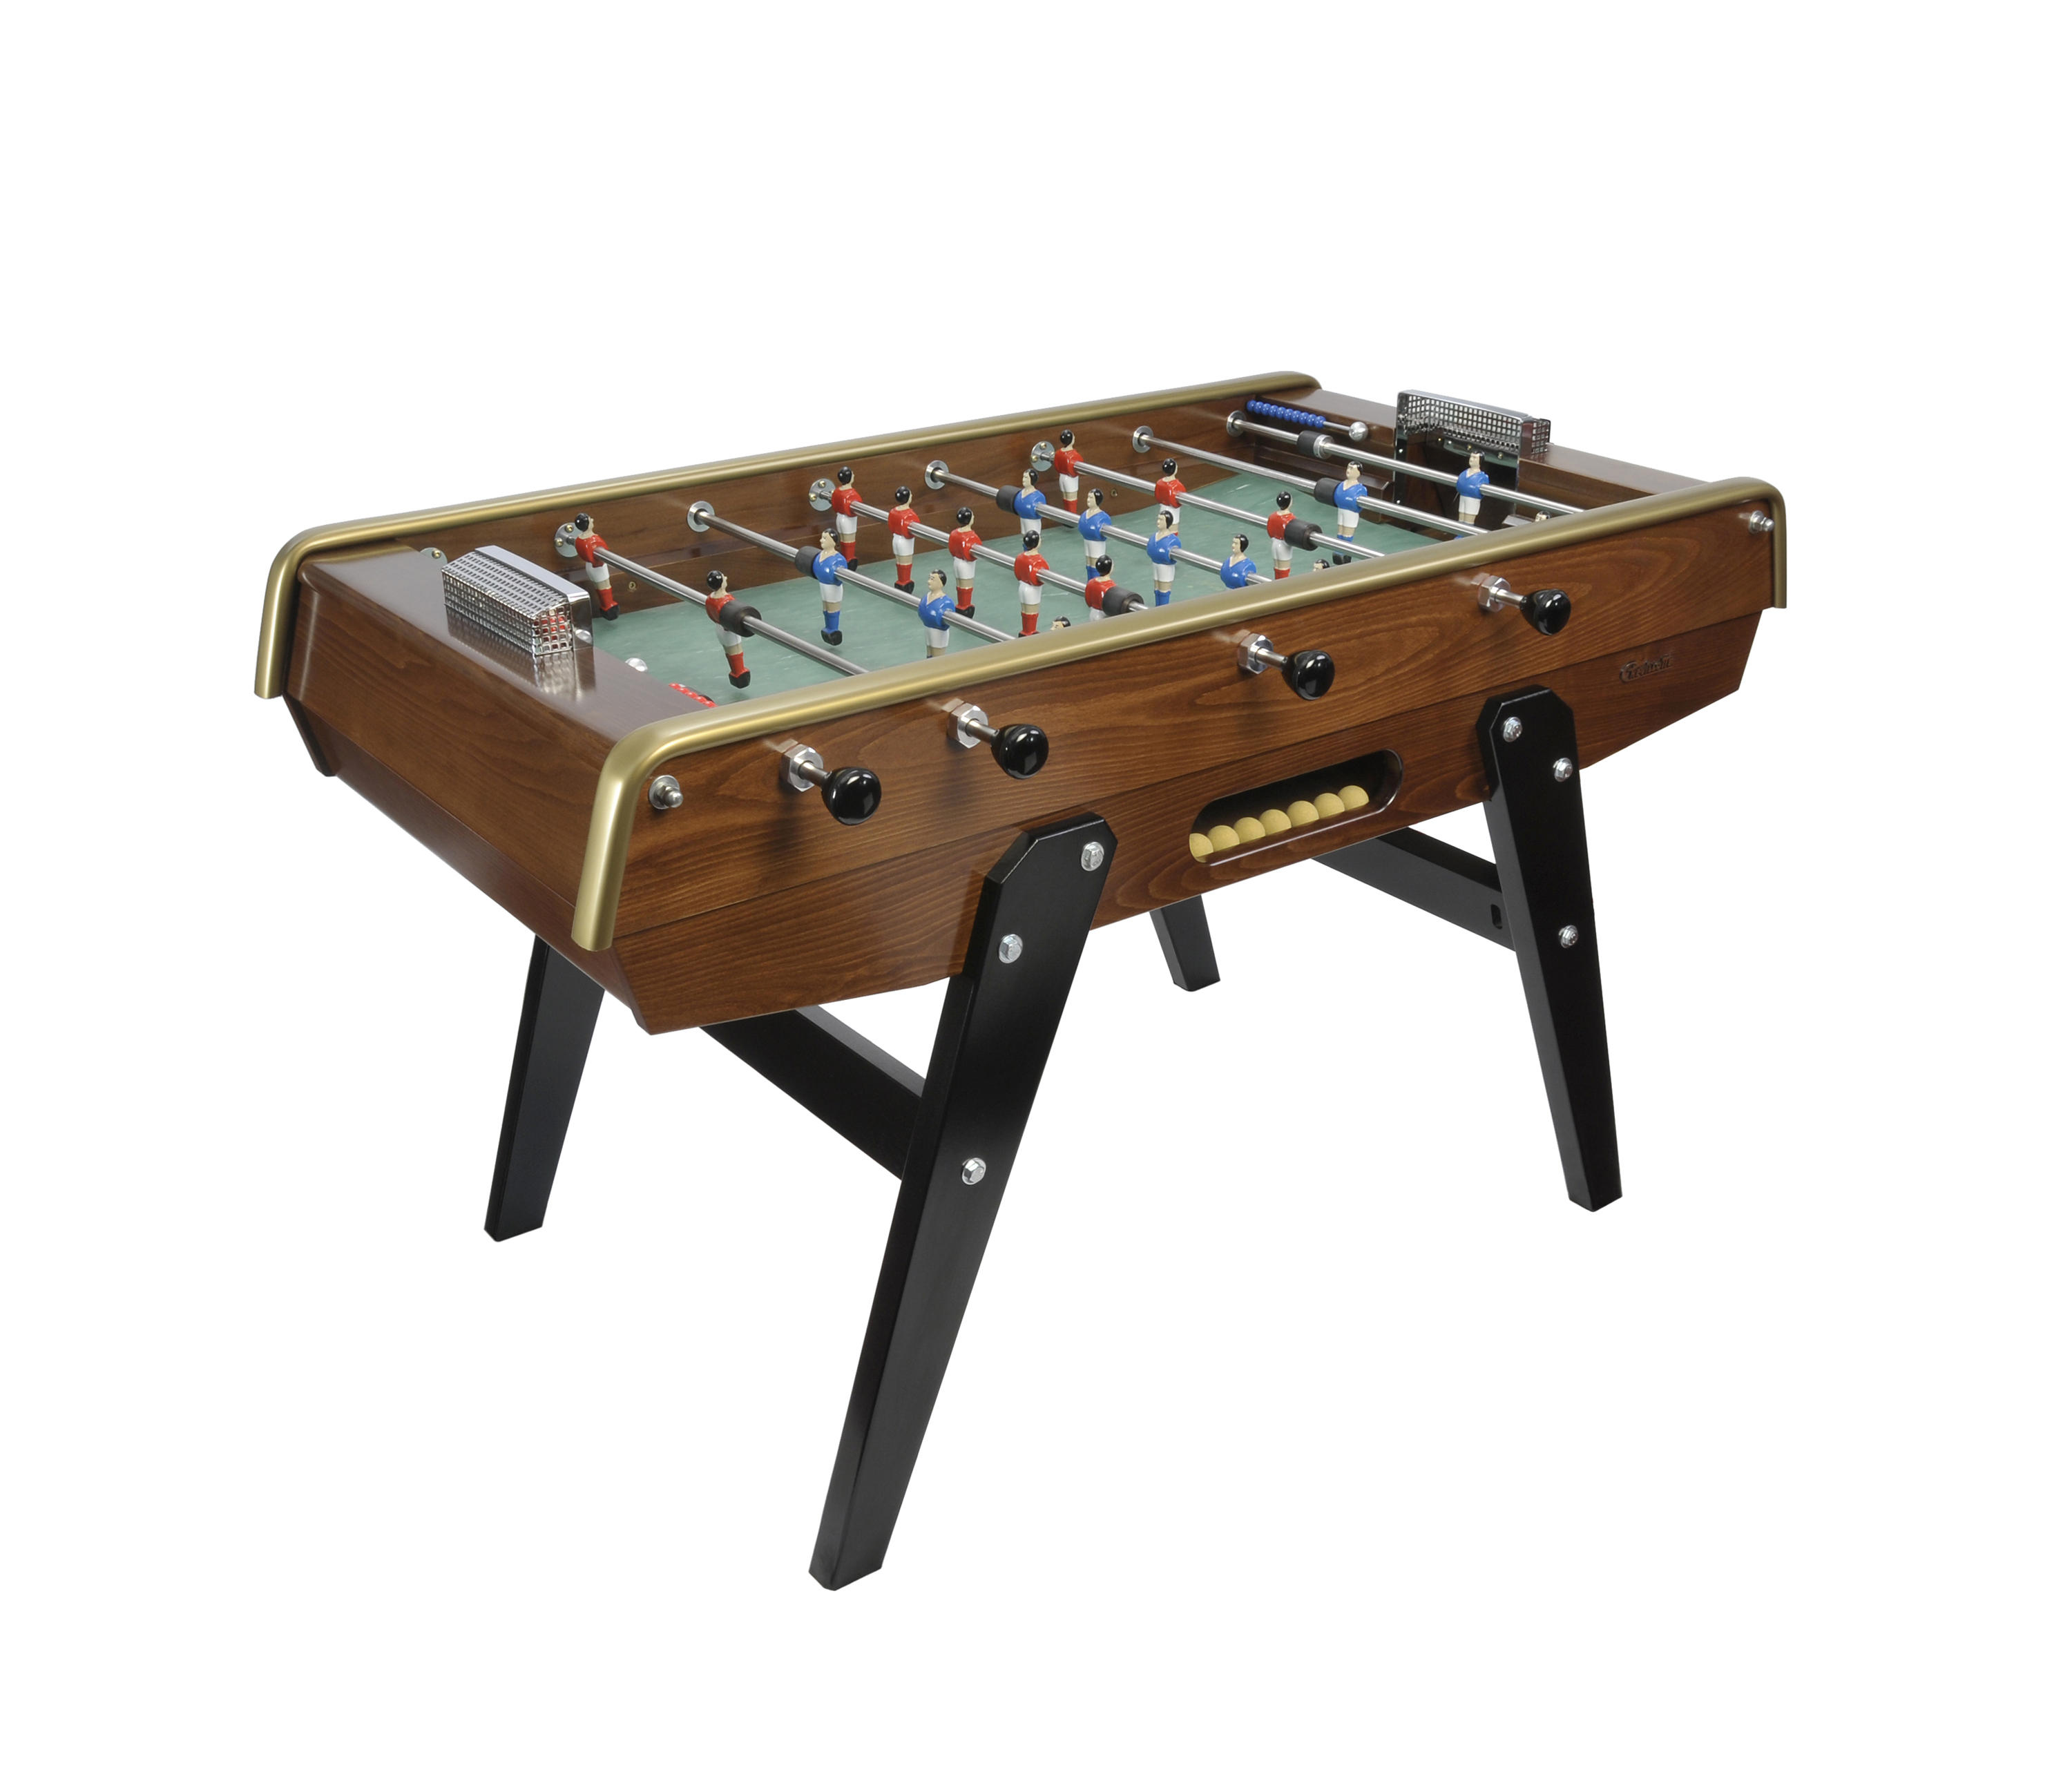 baby foot soccer table tables de jeux de billard de chevillotte architonic. Black Bedroom Furniture Sets. Home Design Ideas